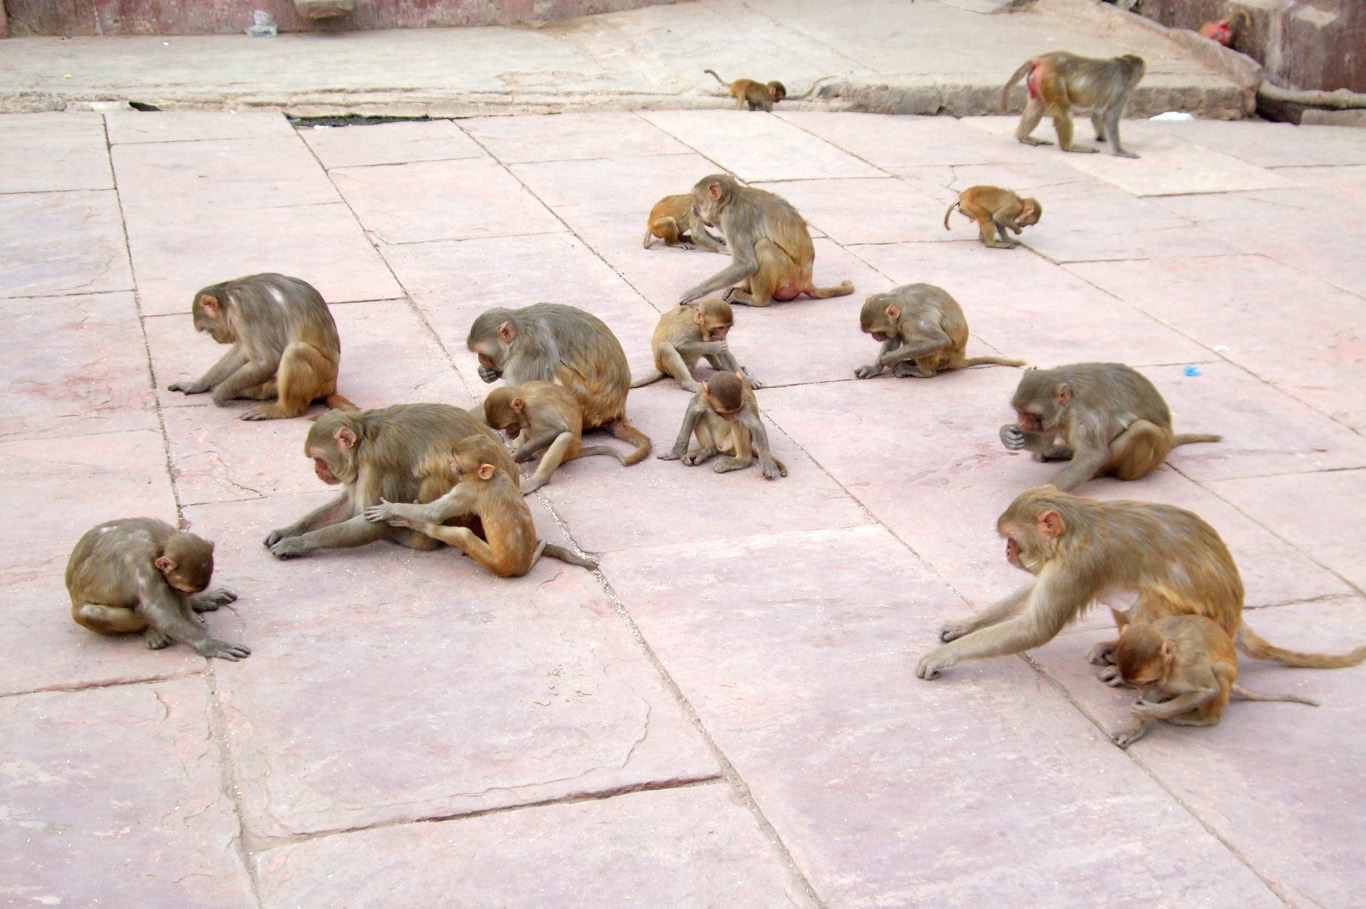 Hungry  monkies  in Mathura